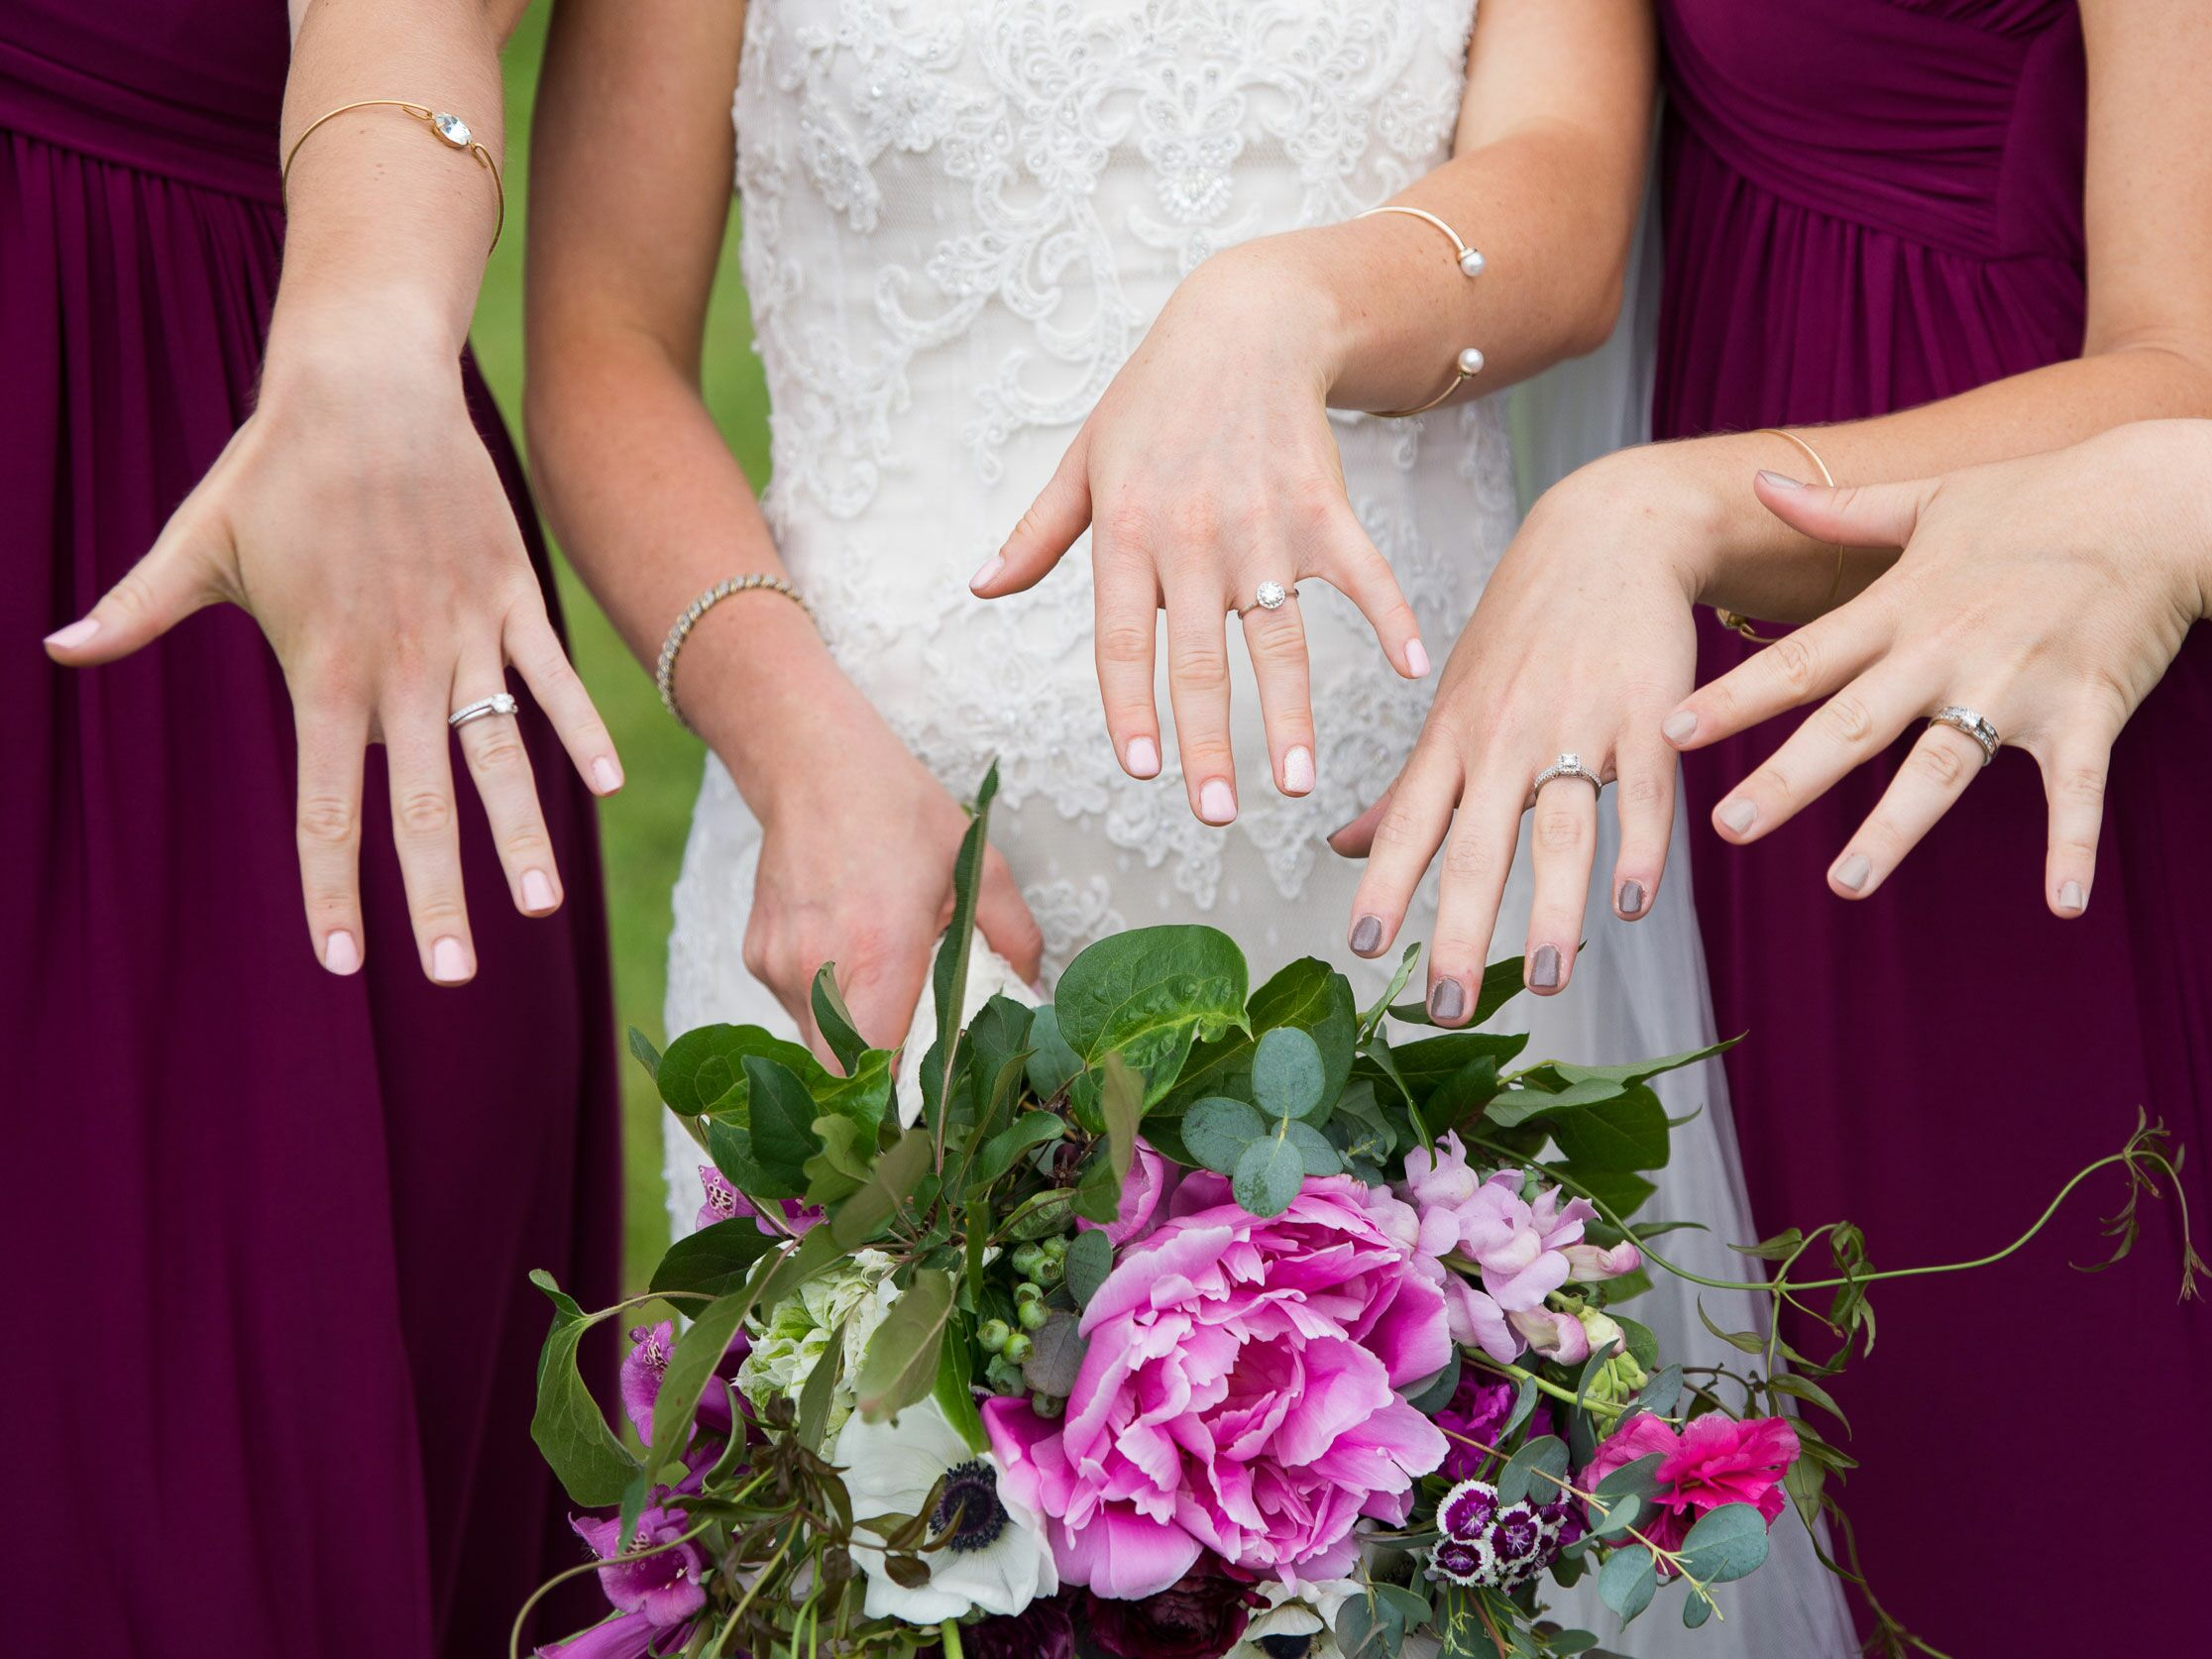 Wedding Manicure Rules: Wedding Nail Dos and Don'ts